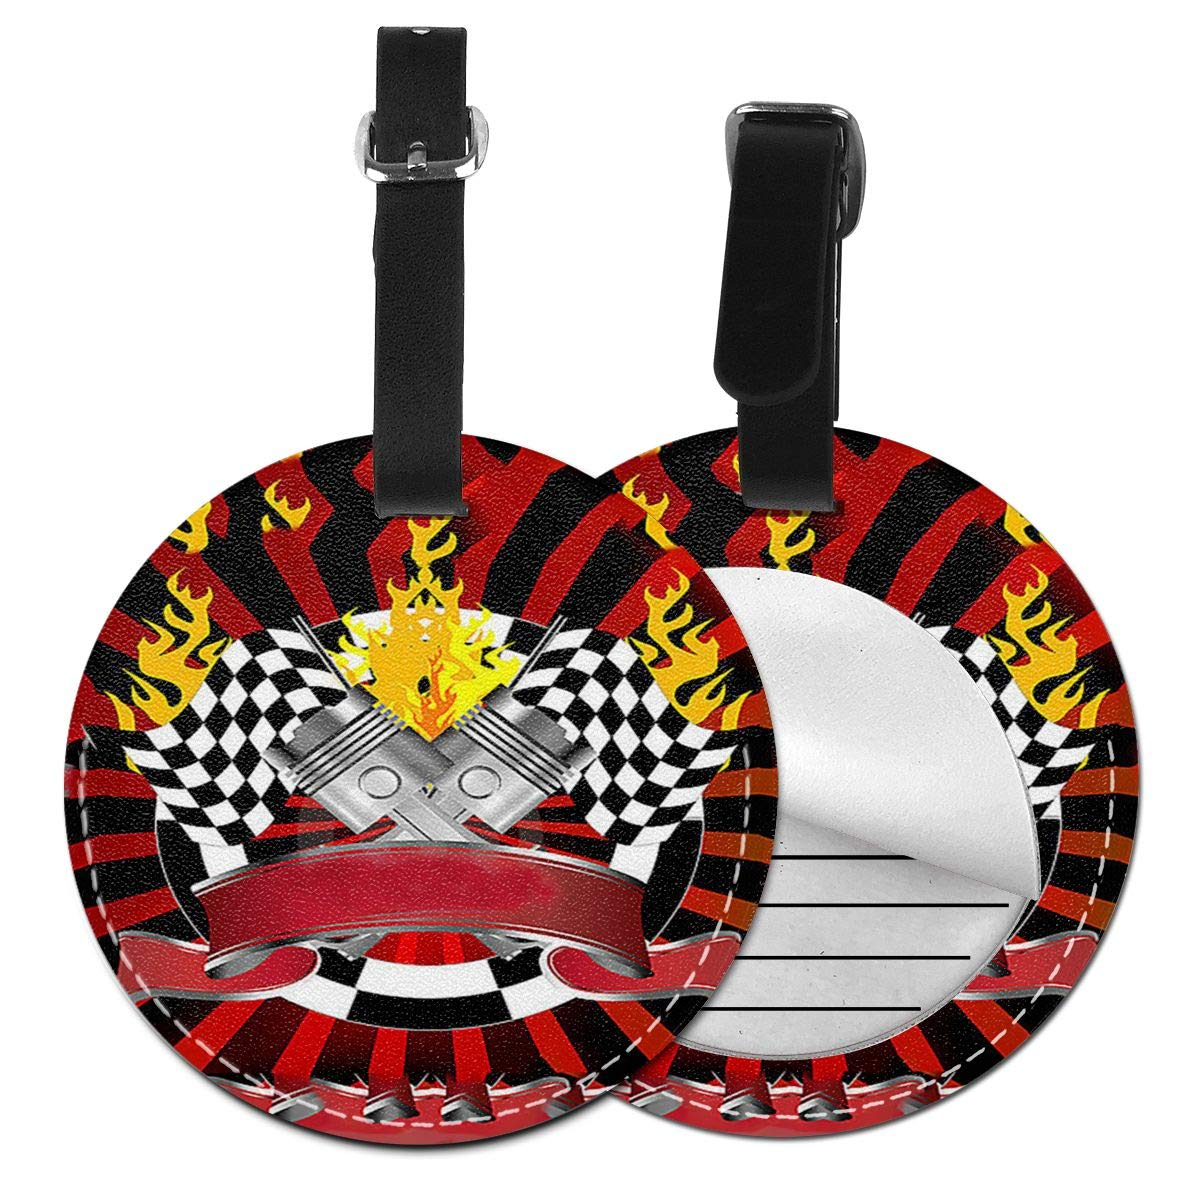 Free-2 2019 Racing Checkered Flag Luggage Tag 3D Print Leather Travel Bag ID Card